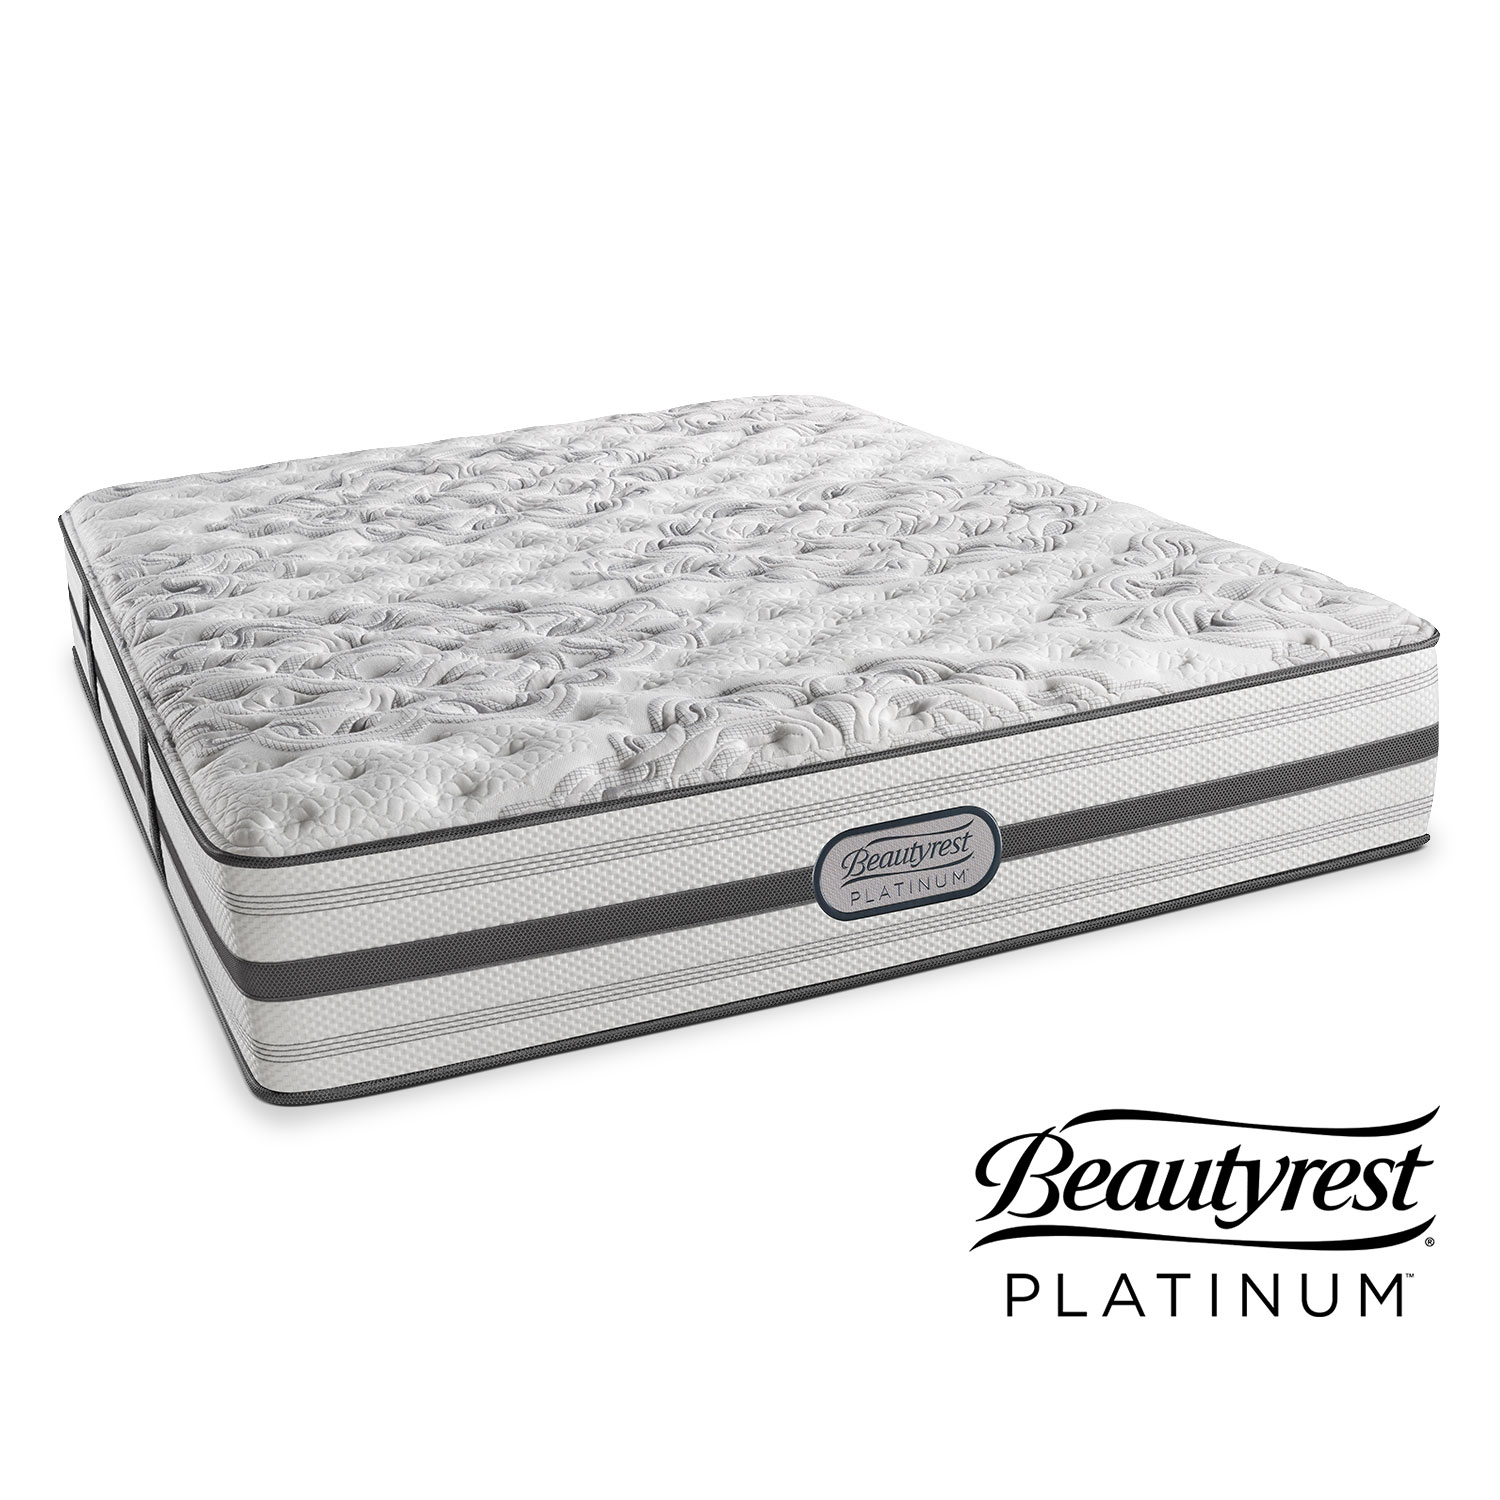 Mattresses and Bedding - Helena Extra-Firm Full Mattress